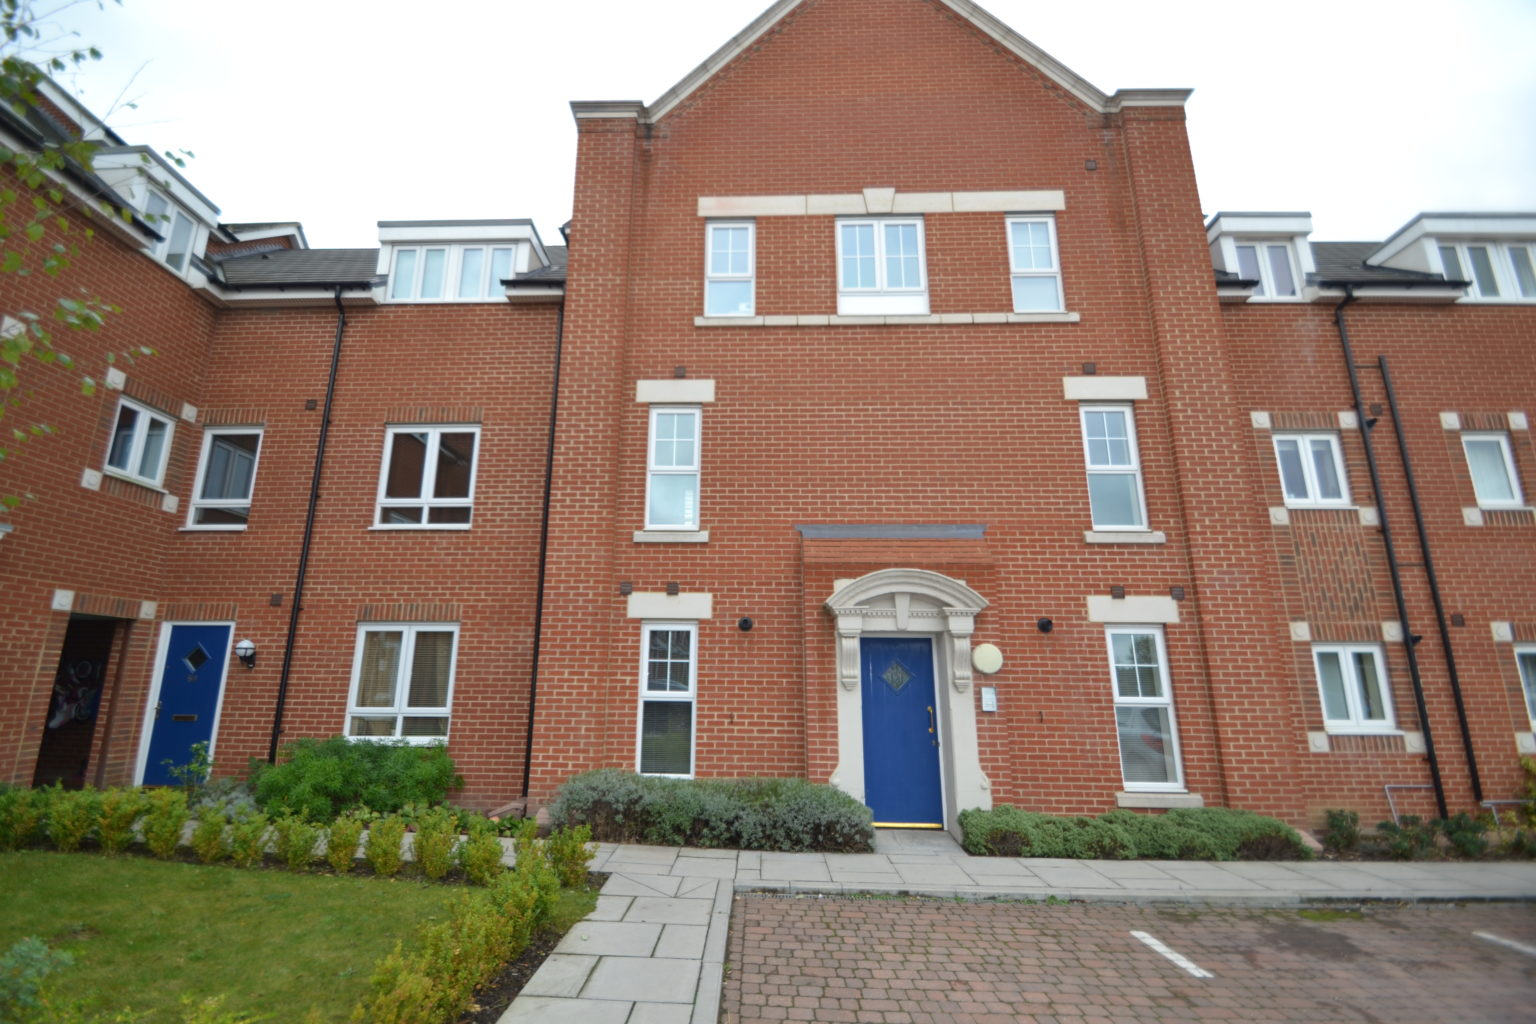 Letting property in Norwich from local letting agent Kings & Co Lettings